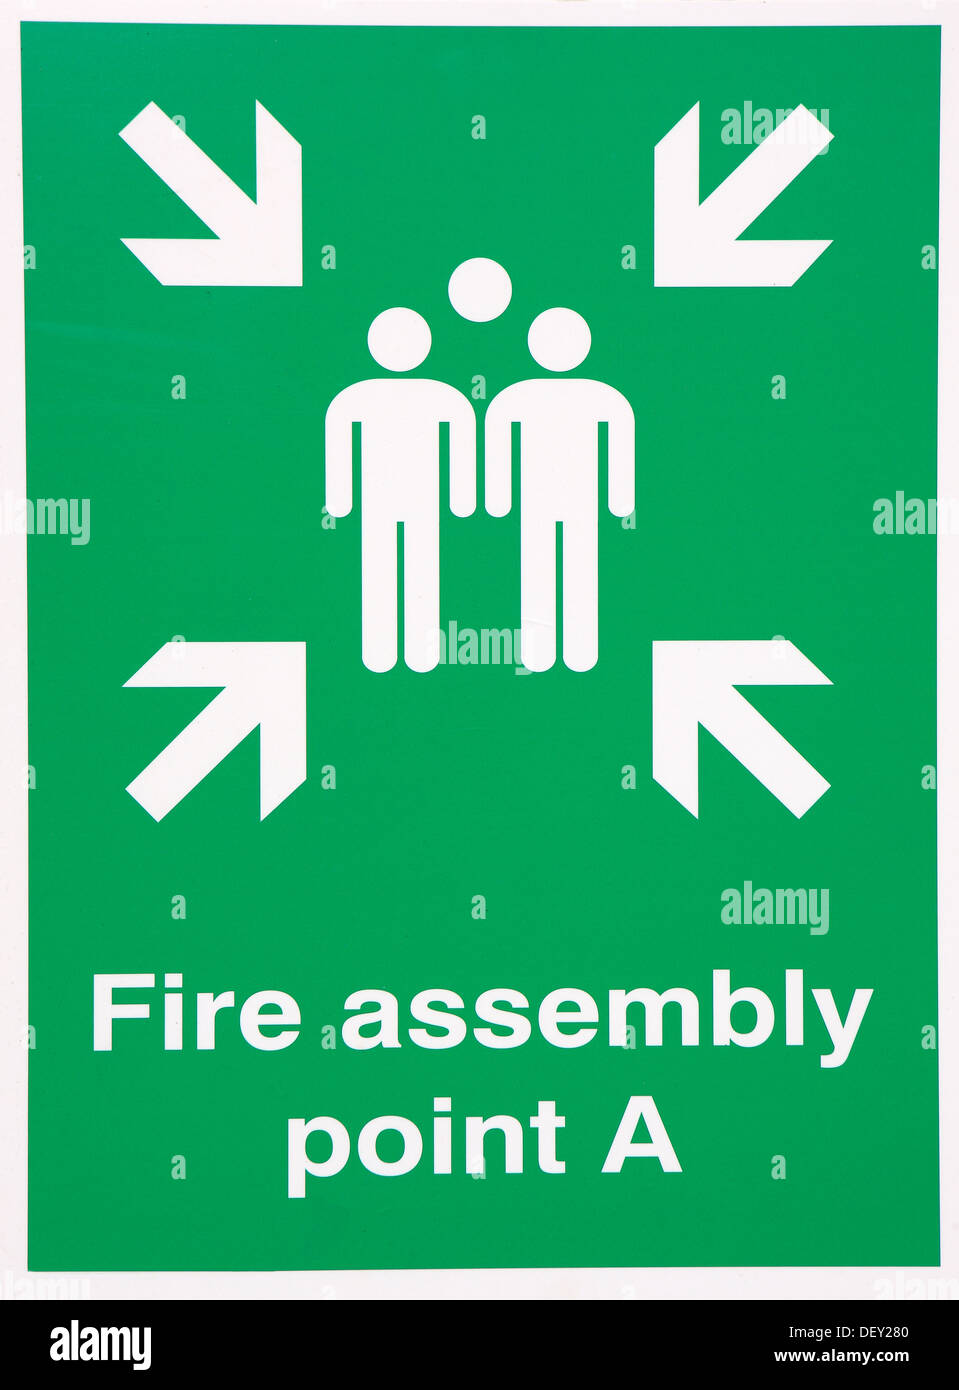 Fire assembly point cut out on a white background - Stock Image